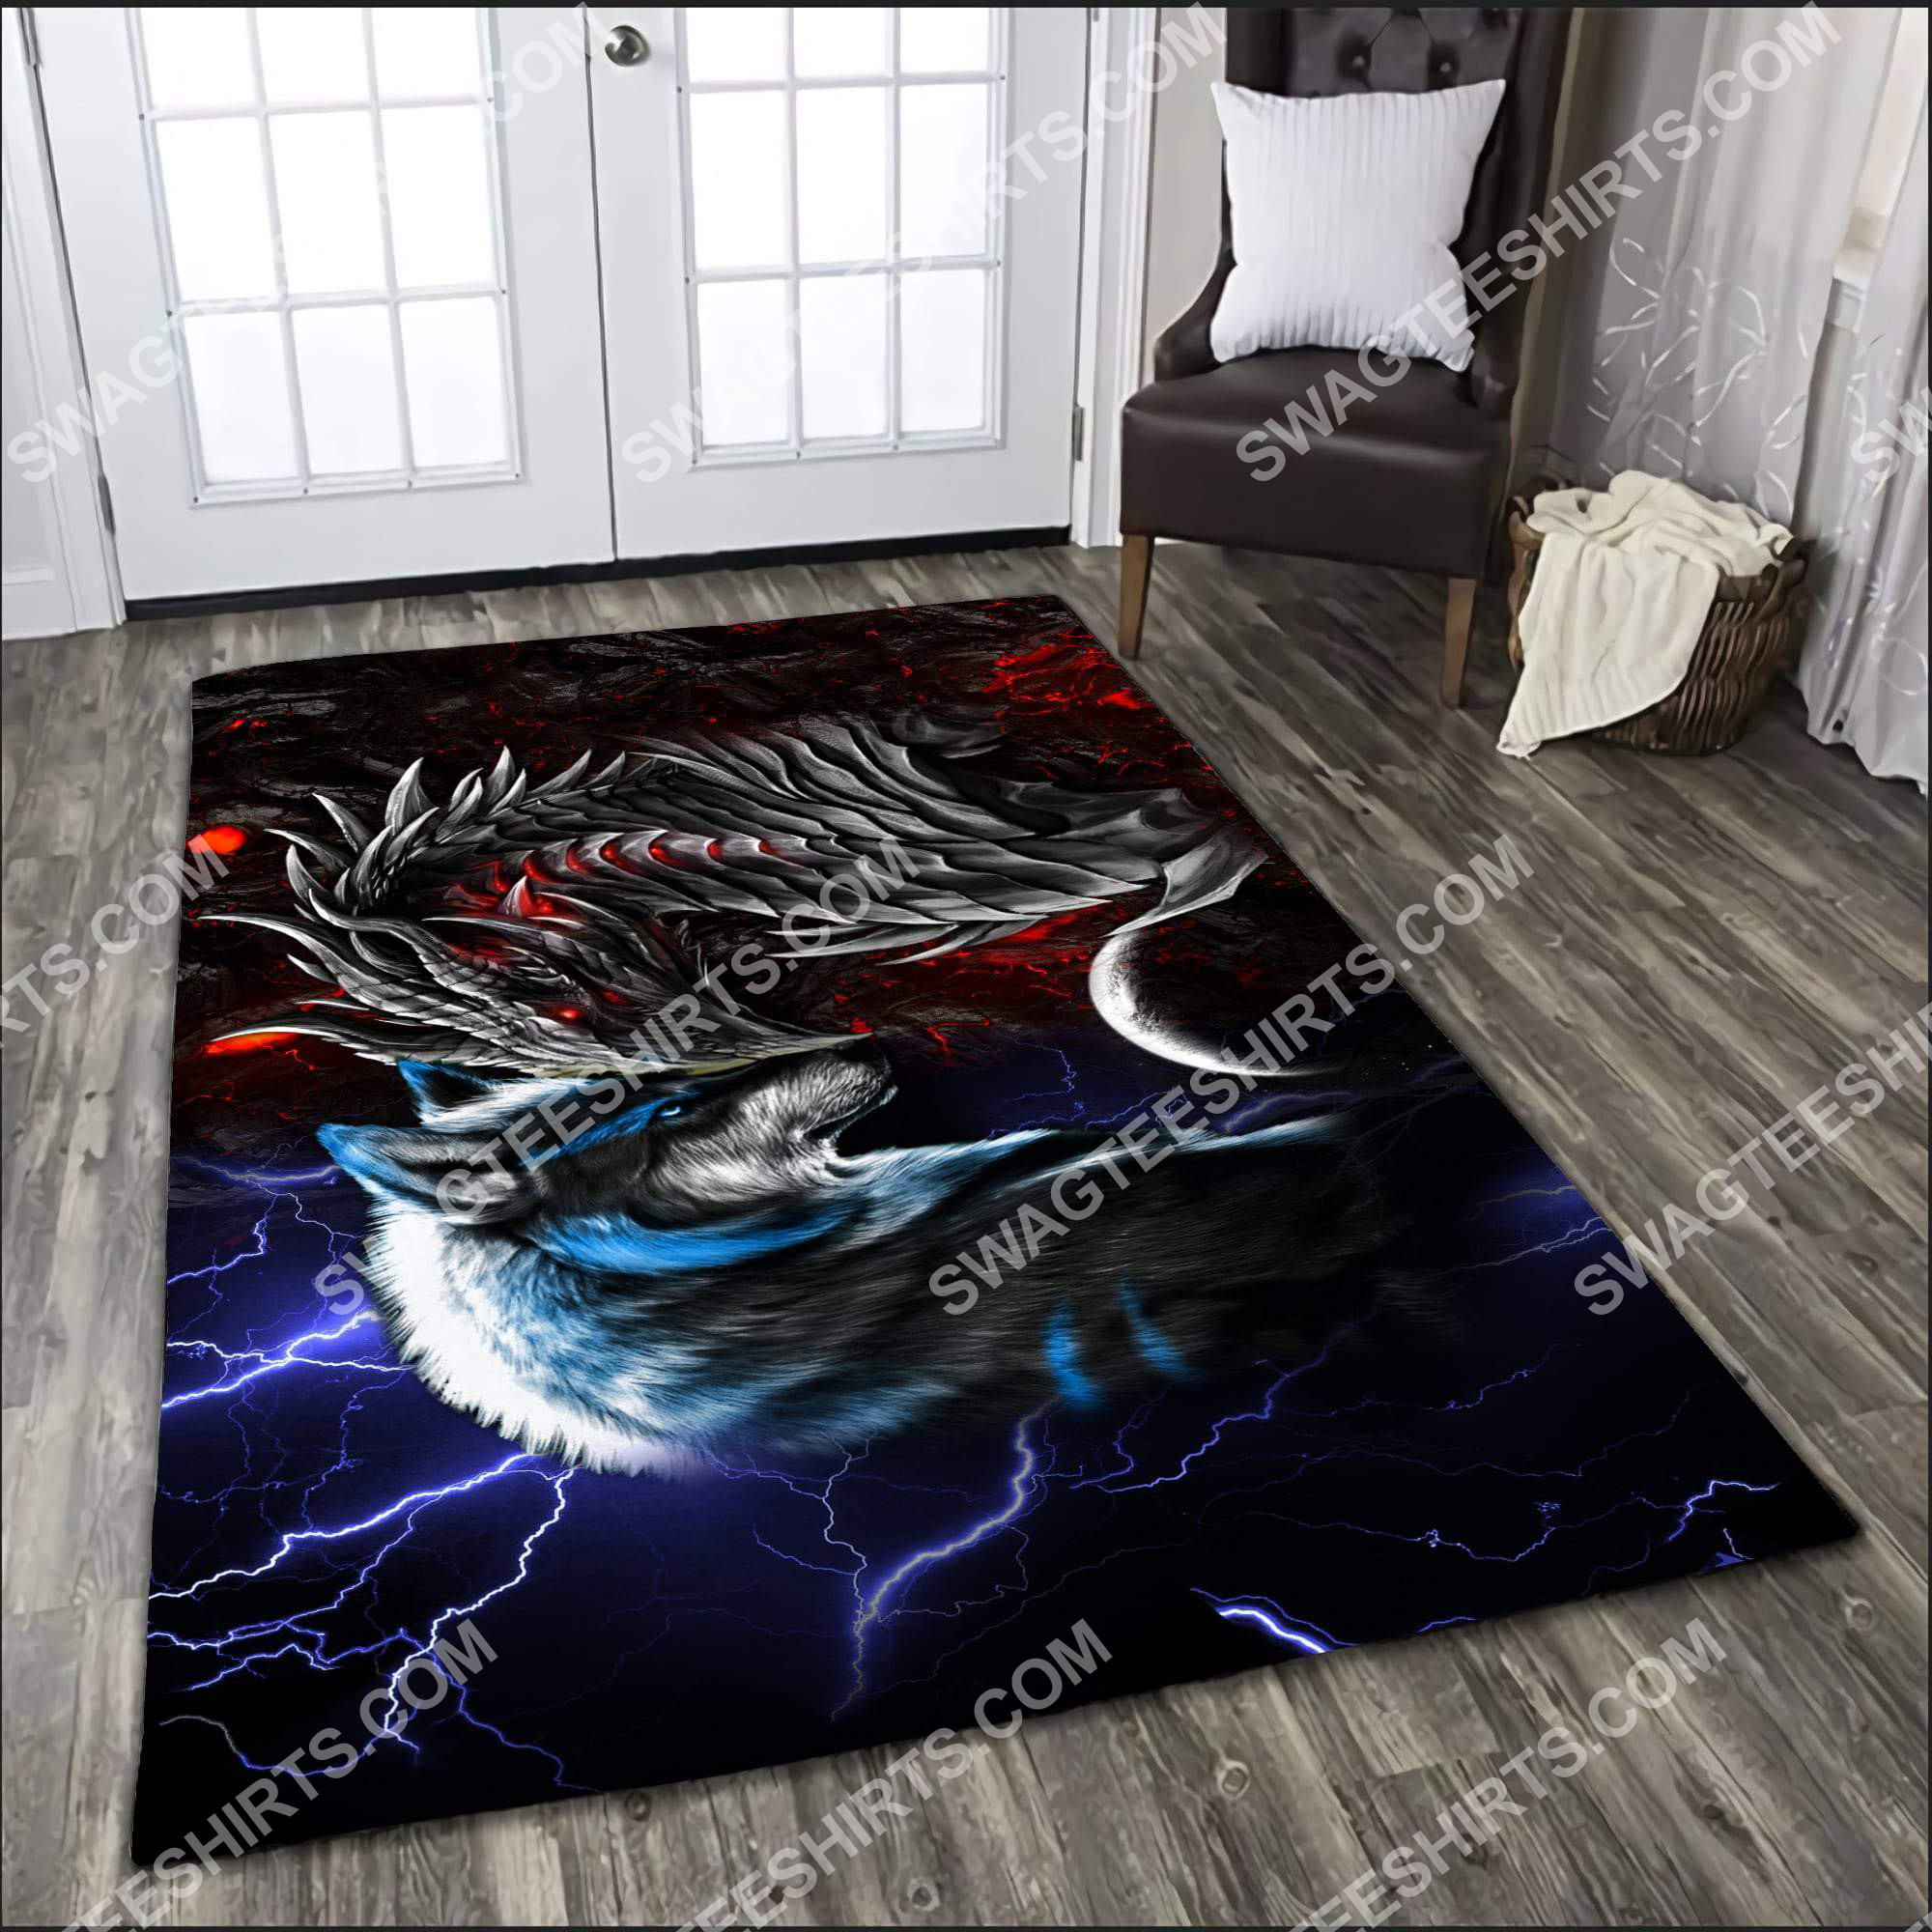 thunder and fire dragon and wolf all over printed rug 3(1) - Copy